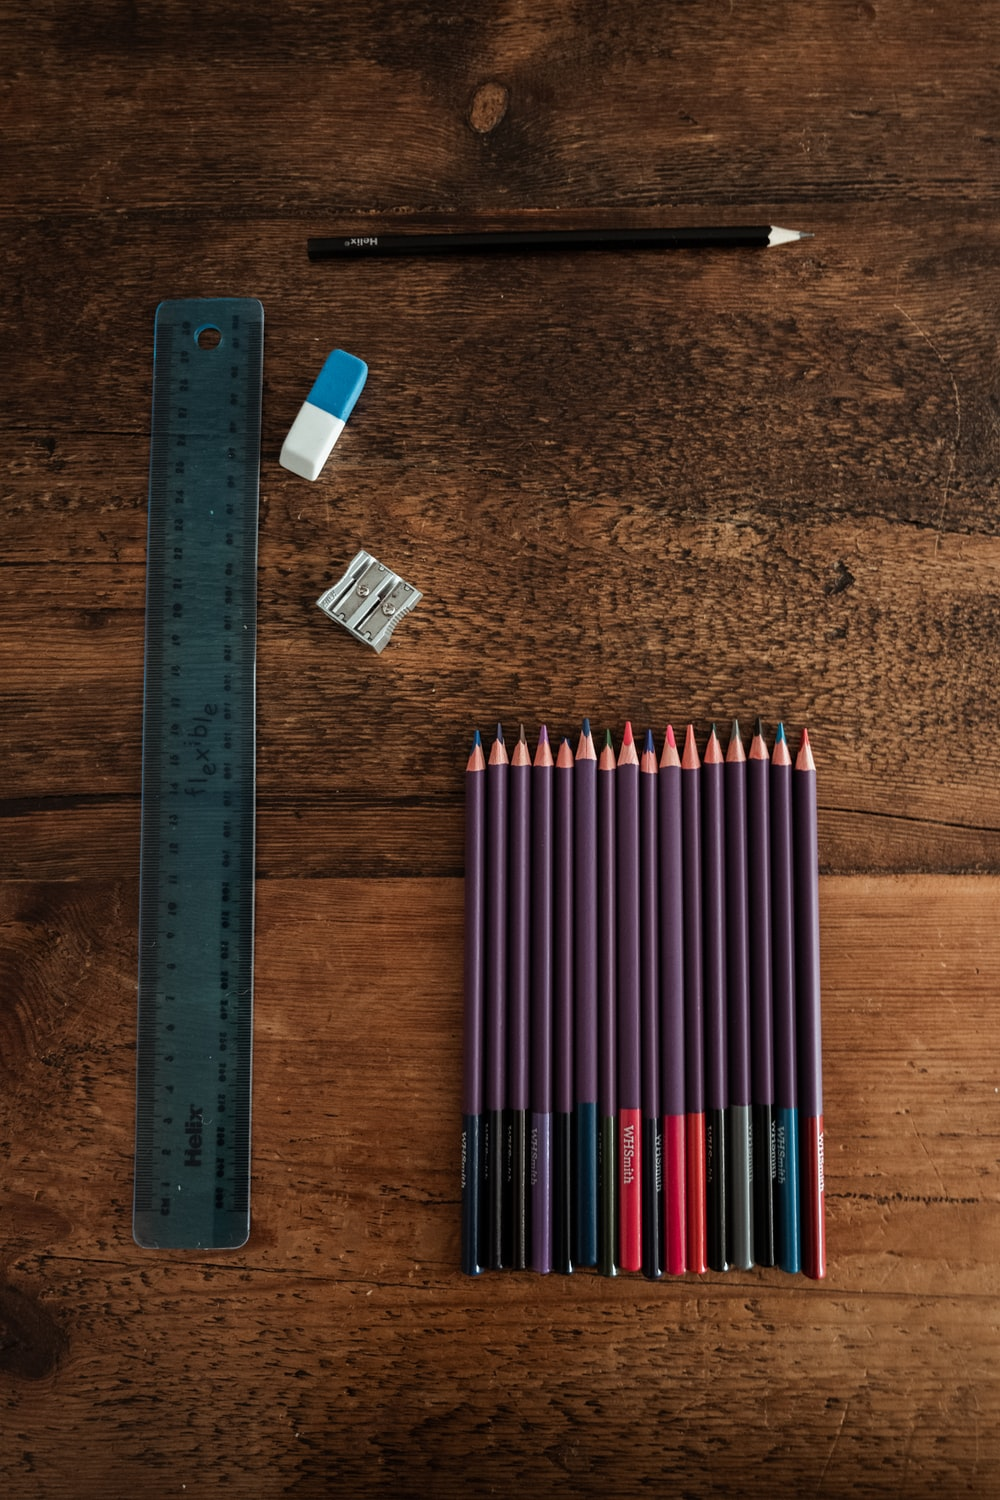 blue and white pencils on brown wooden table